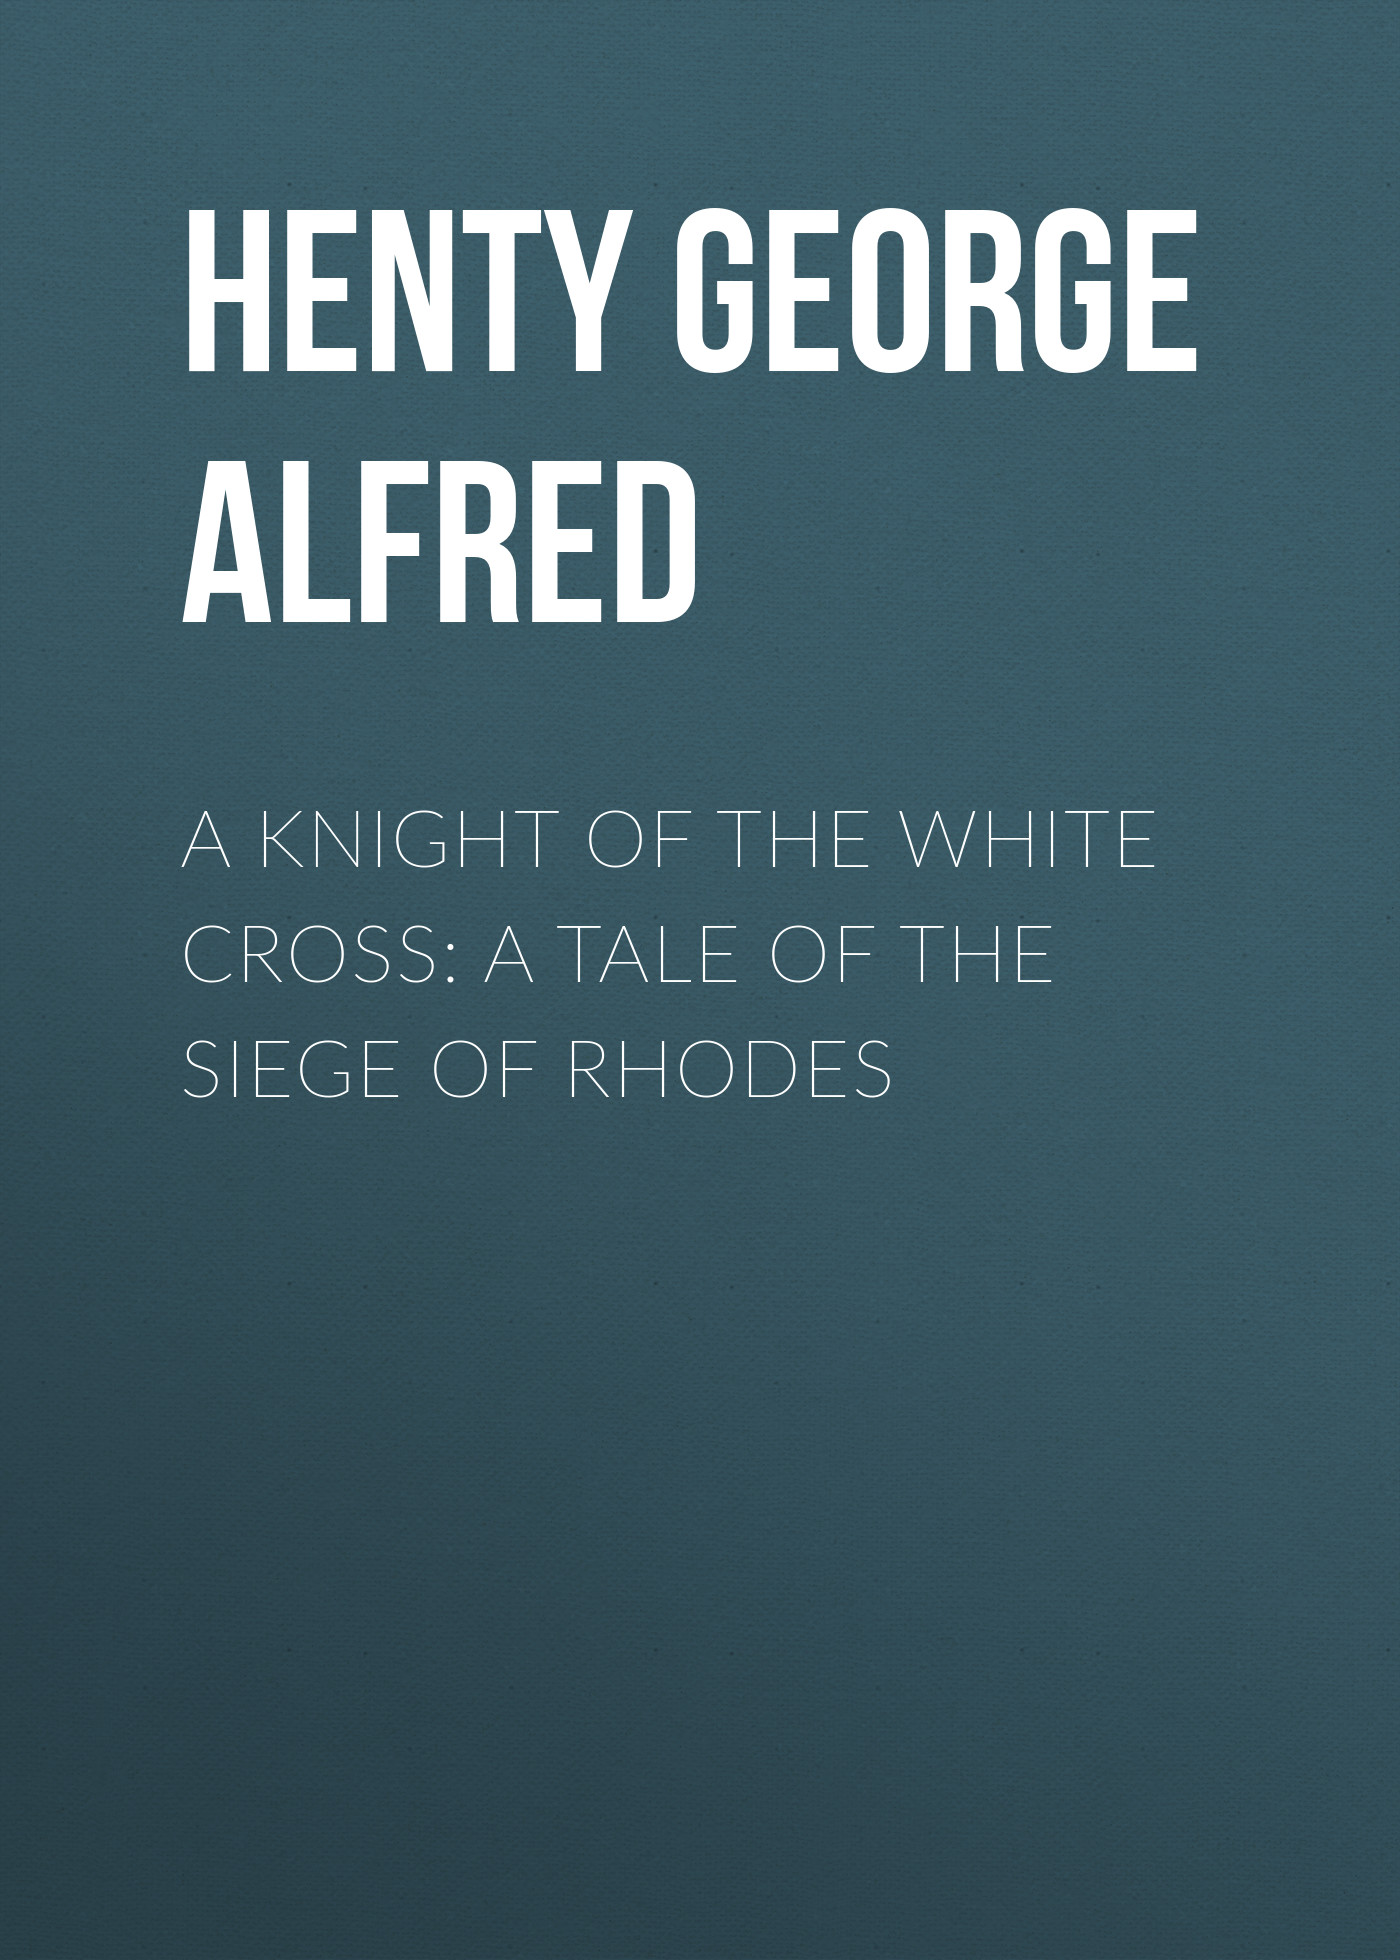 цена Henty George Alfred A Knight of the White Cross: A Tale of the Siege of Rhodes